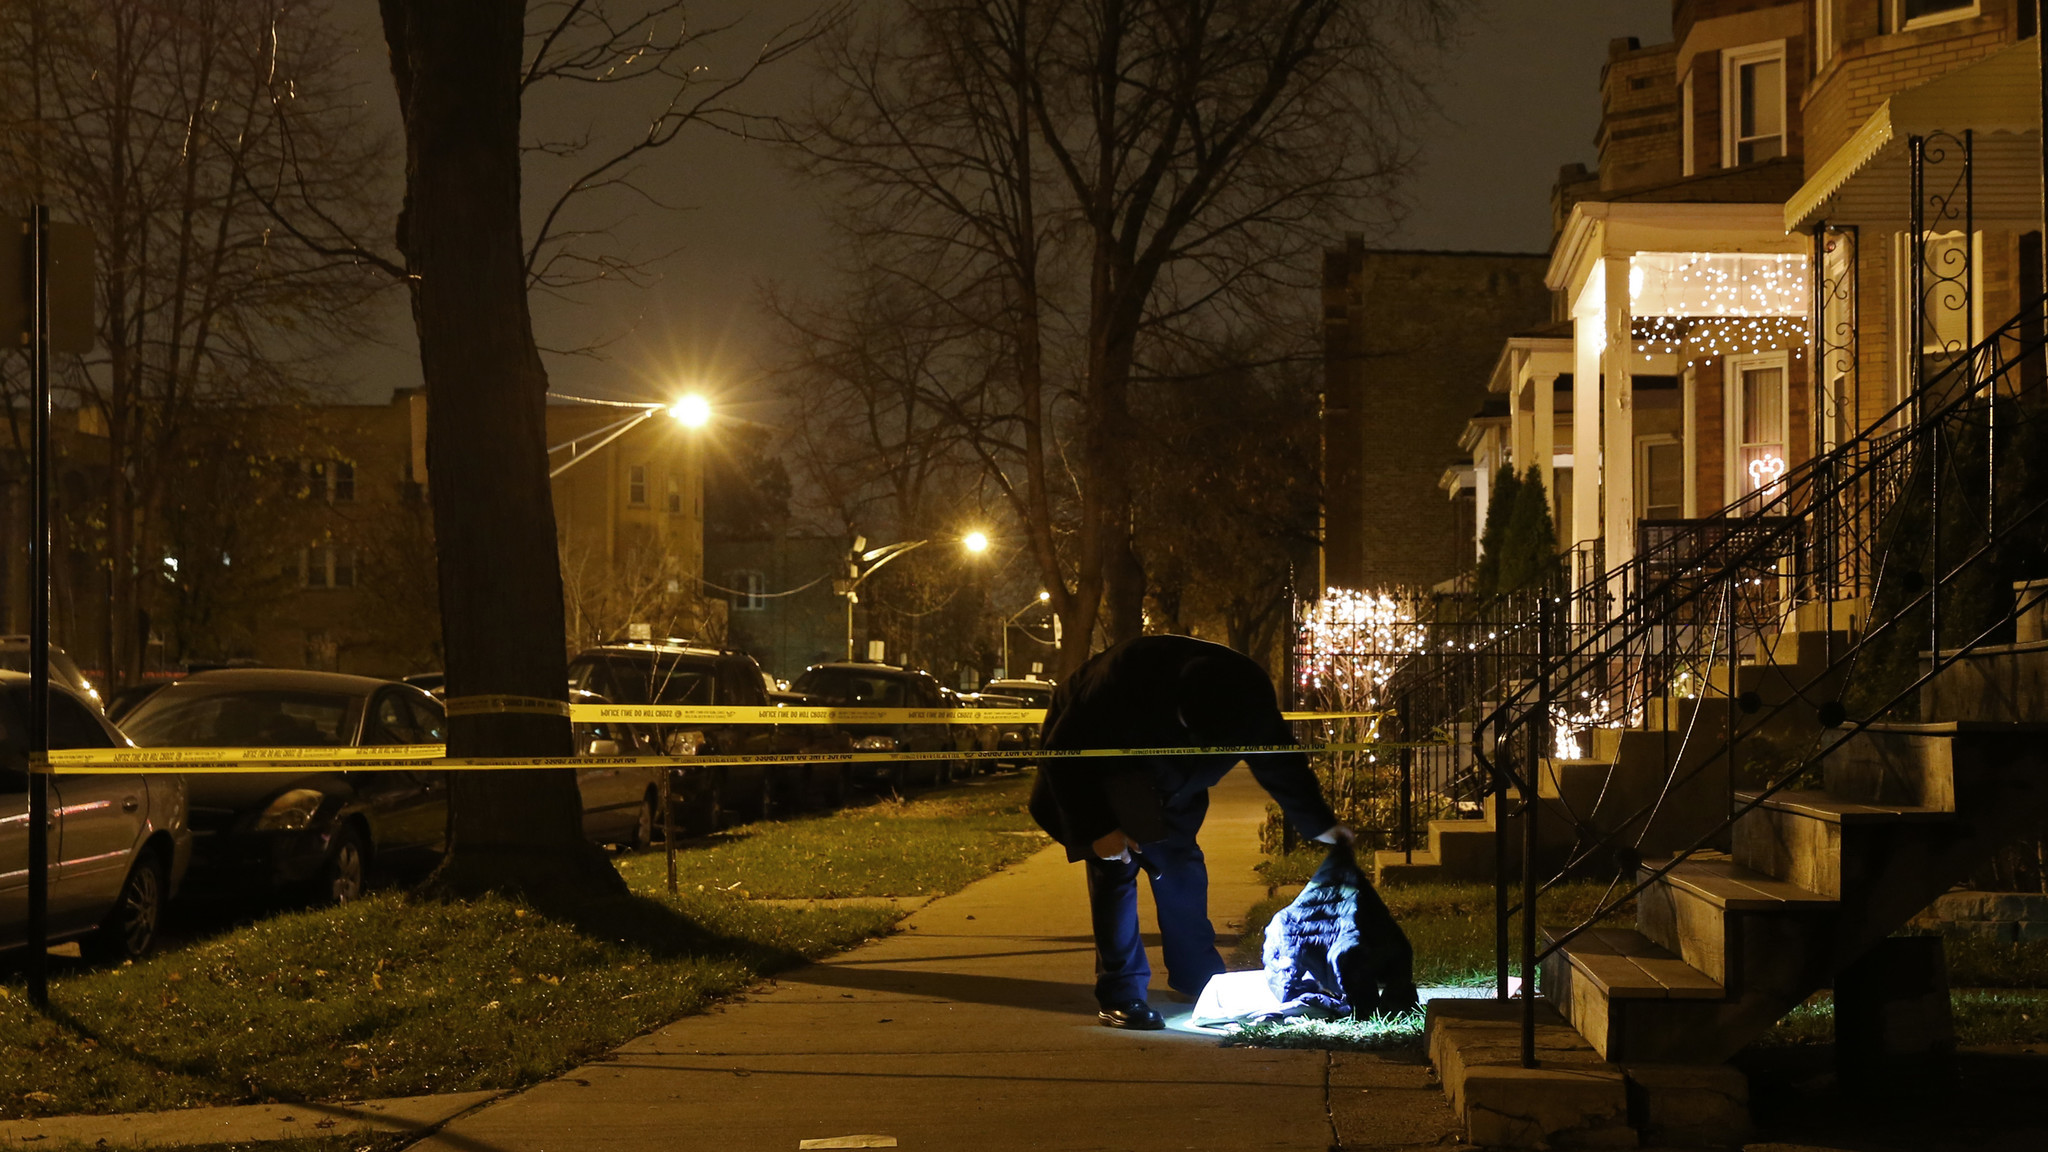 2 killed, at least 9 wounded in city shootings - Chicago Tribune